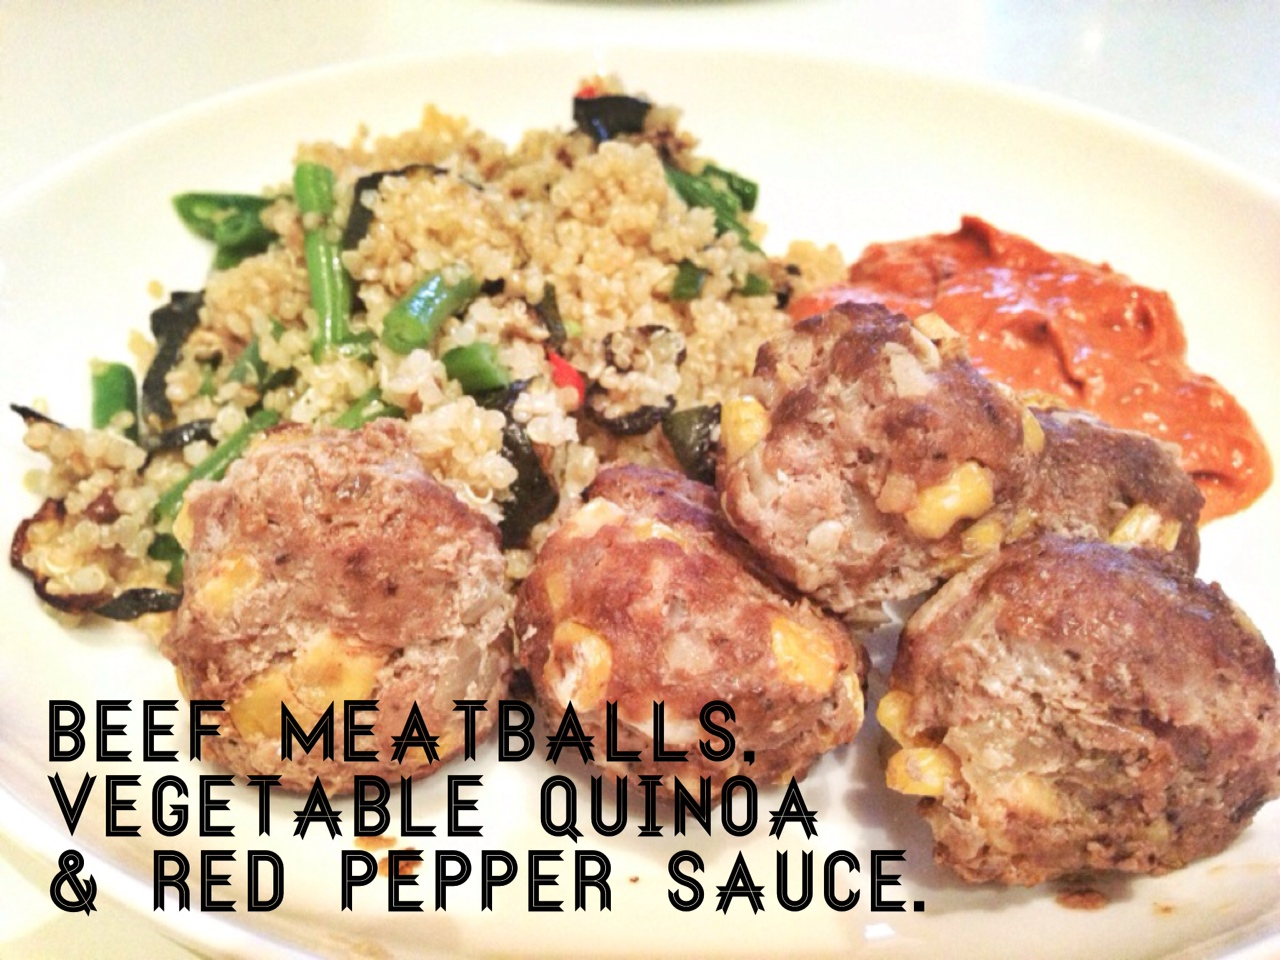 Healthy beef meatballs recipe with red pepper sauce